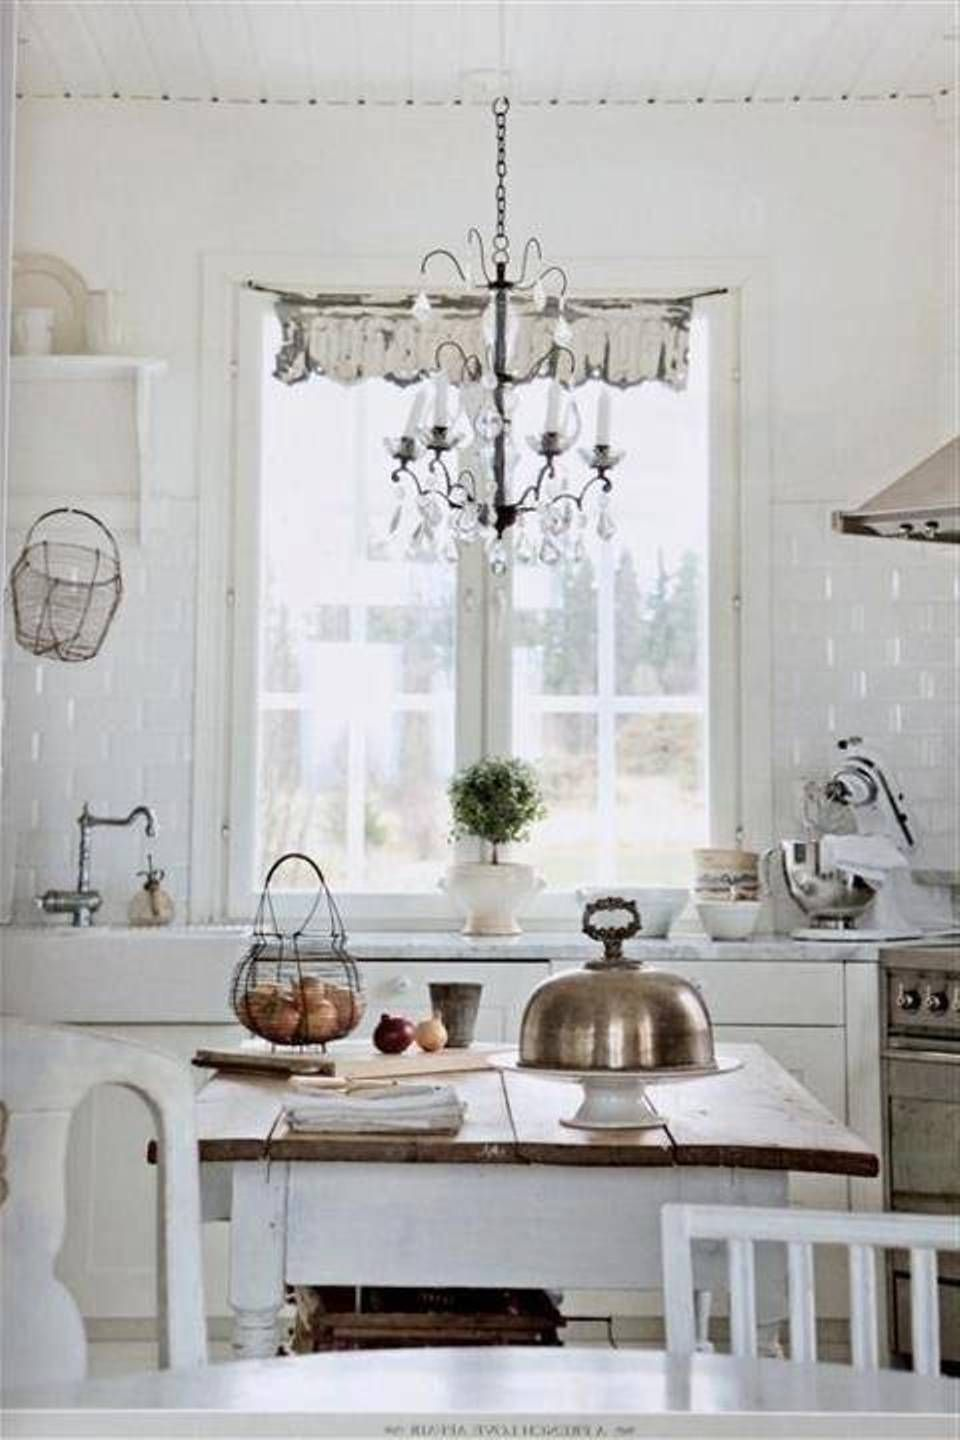 Shabby Chic White Kitchen With Chandelier Lighting Fixtures ...